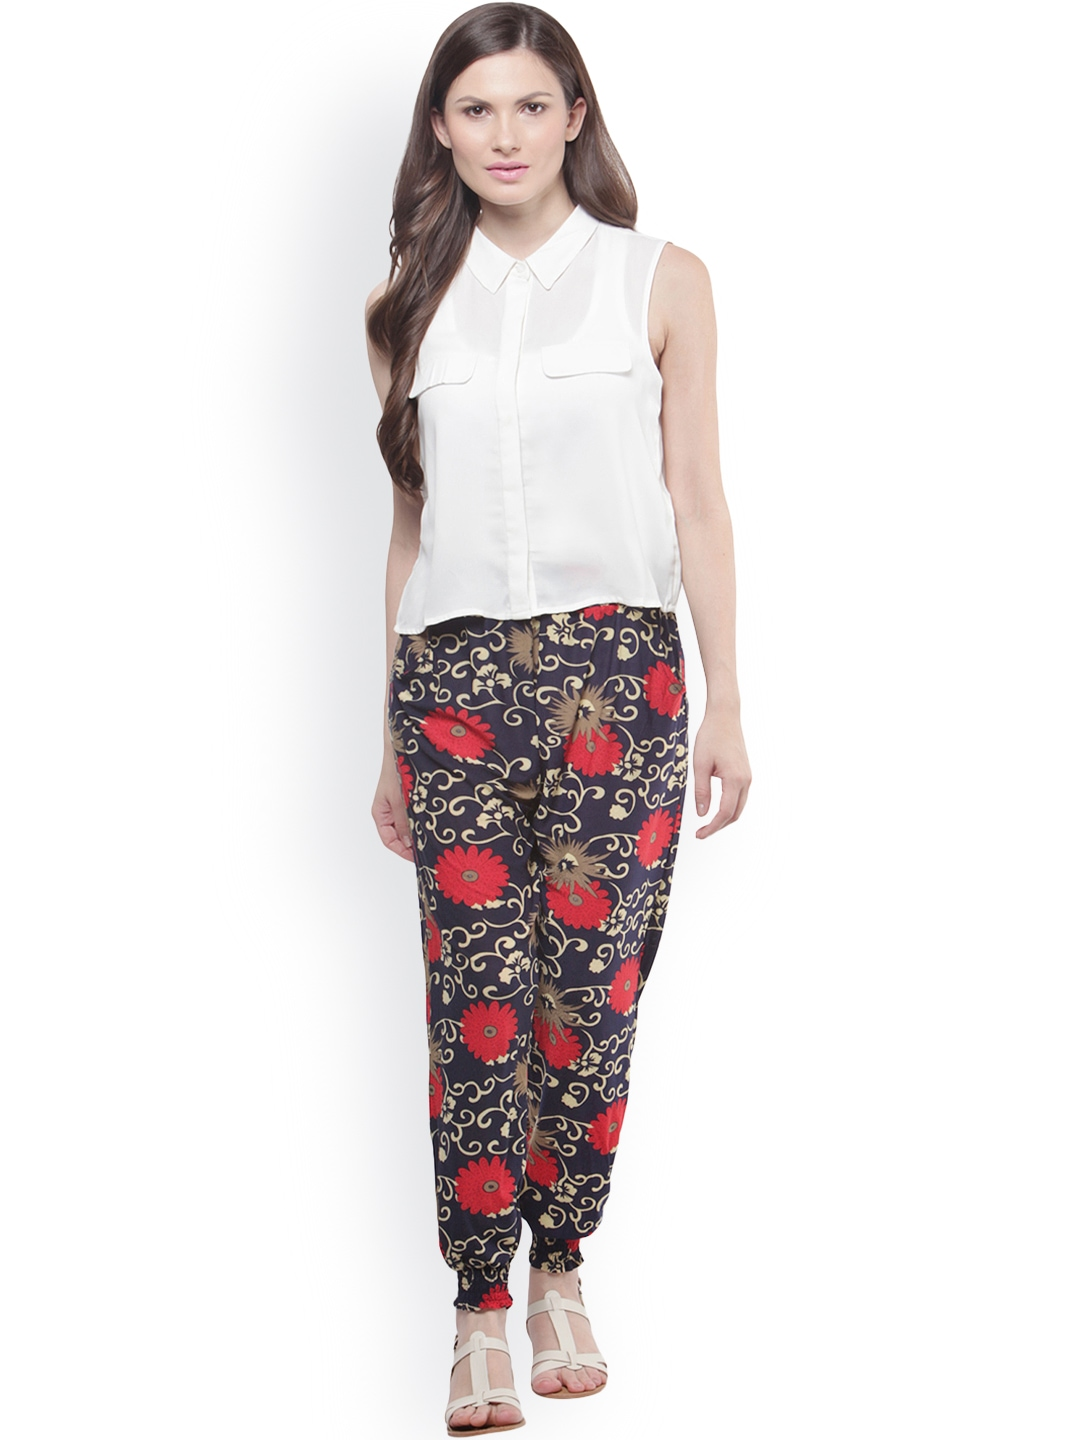 Red and White elephant print bohemian harem pants from Thailand with 2 Pockets, elastic waist and ankles. $1 for every item sold is donated to help preserve the Elephants for many years to come!/5().